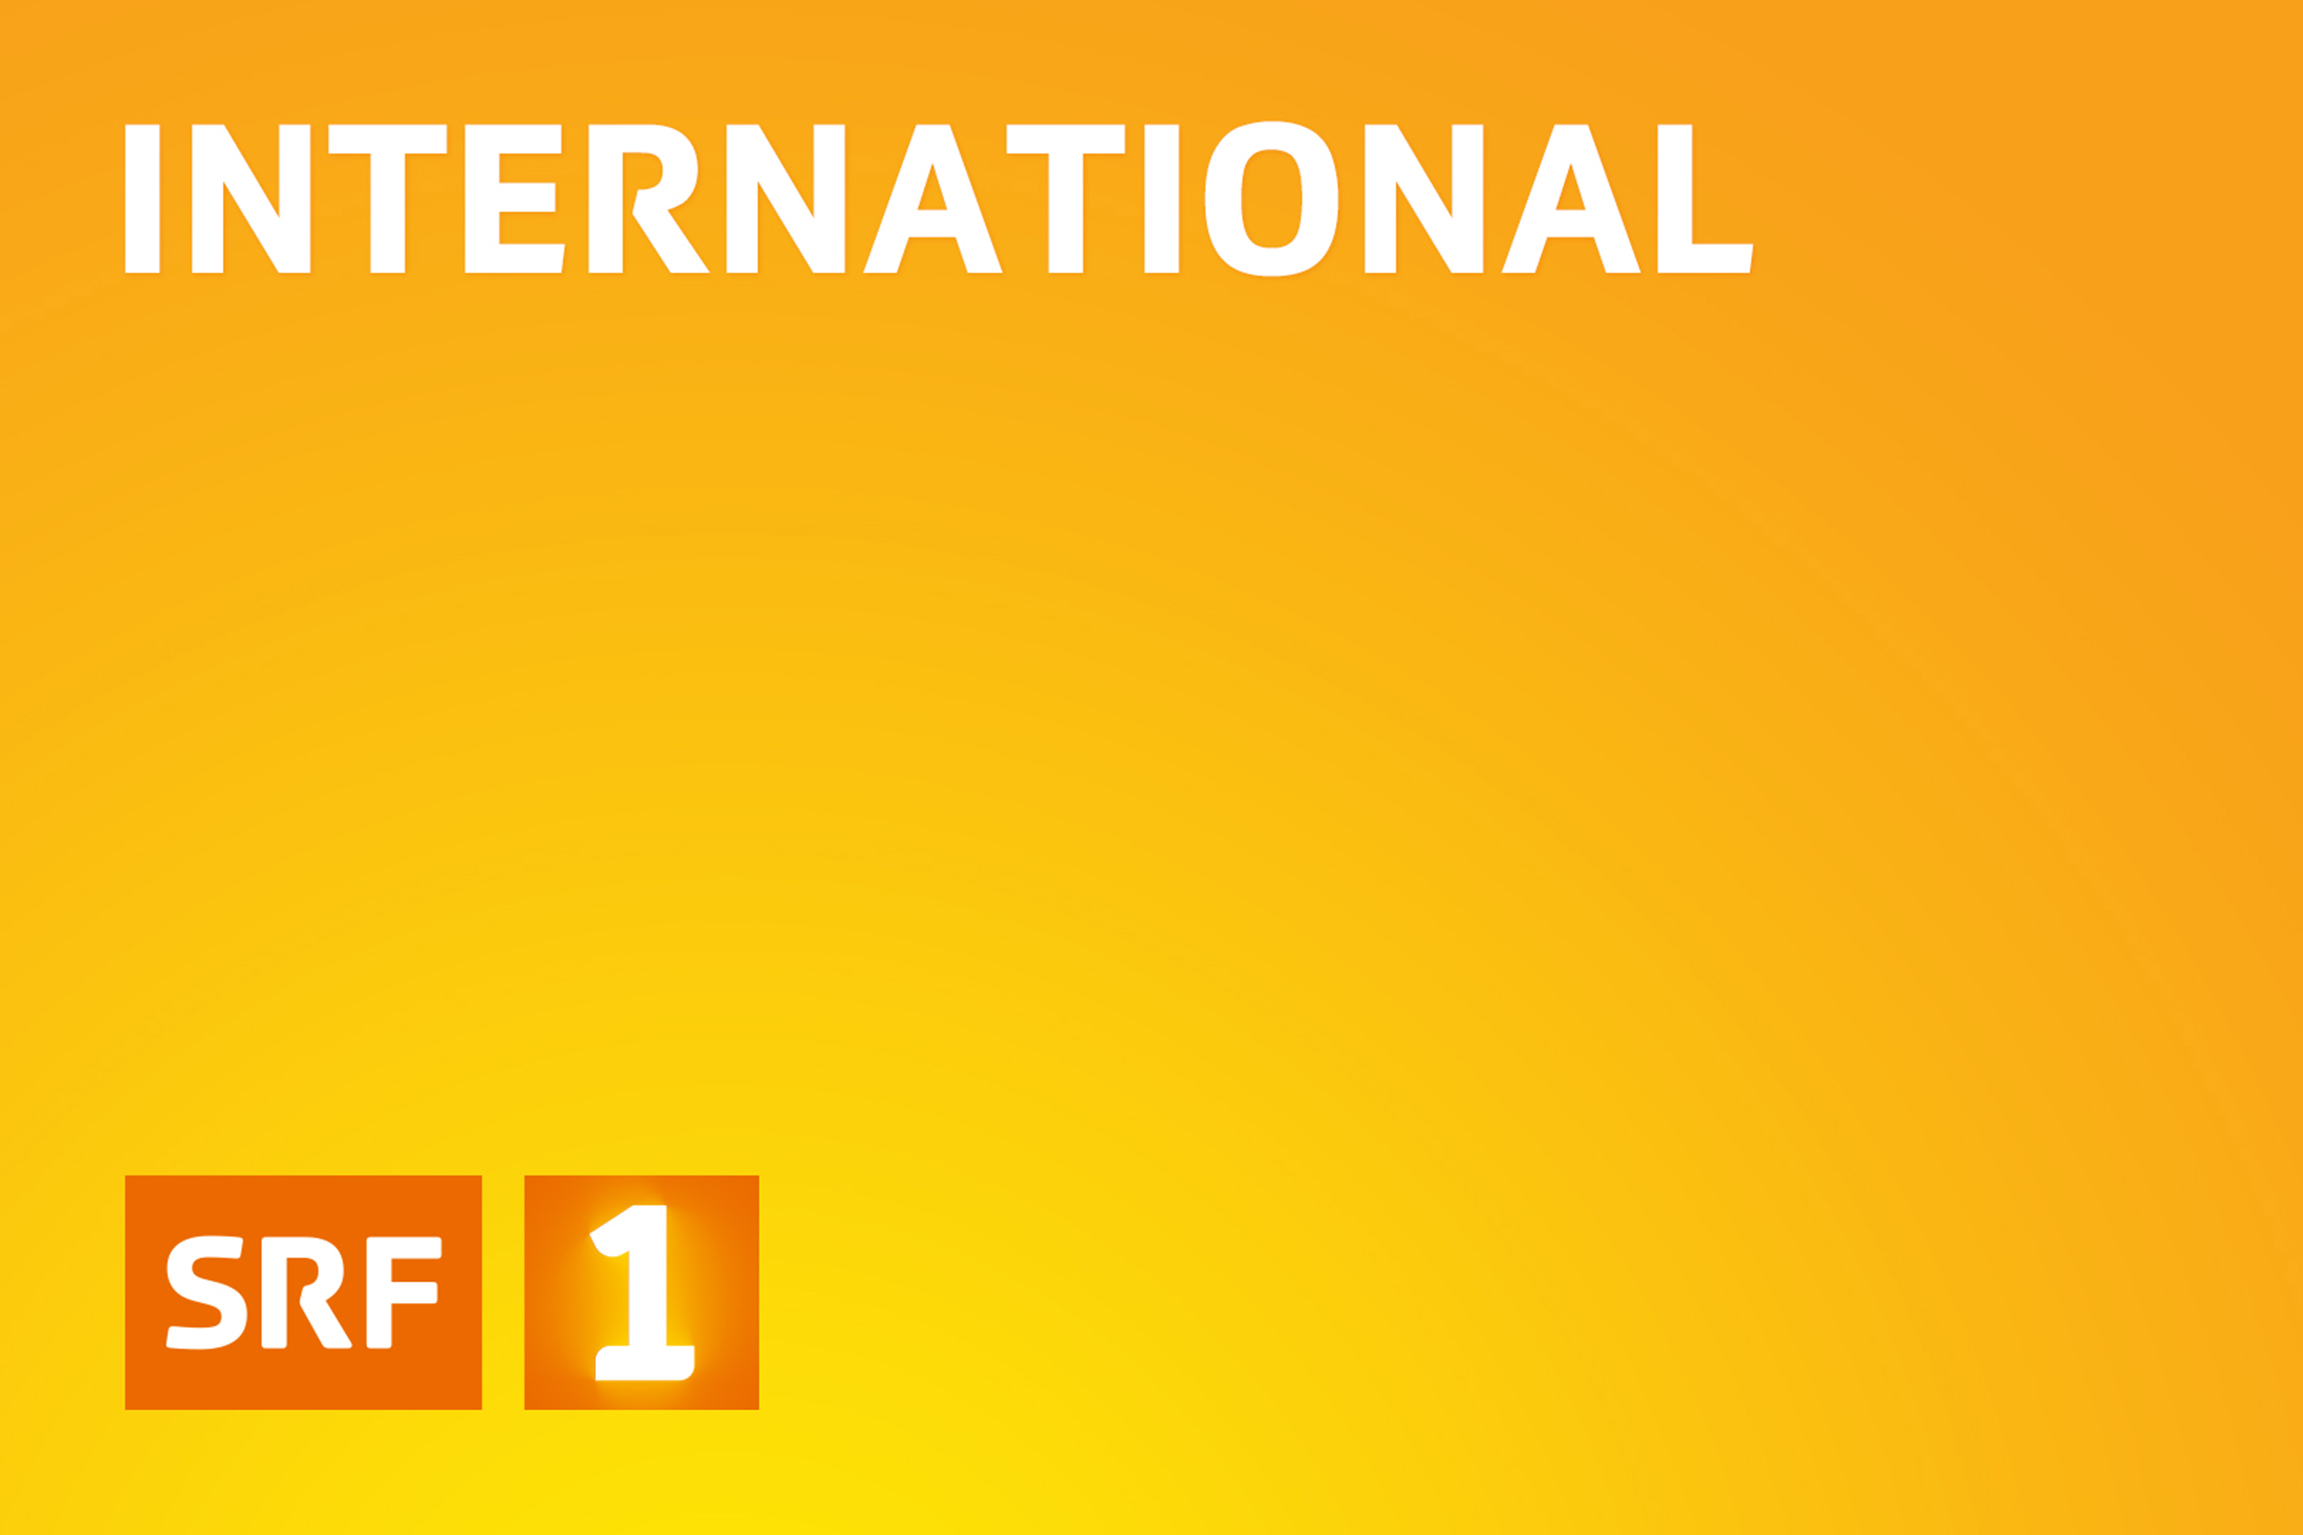 International Radio SRF 1 Logo